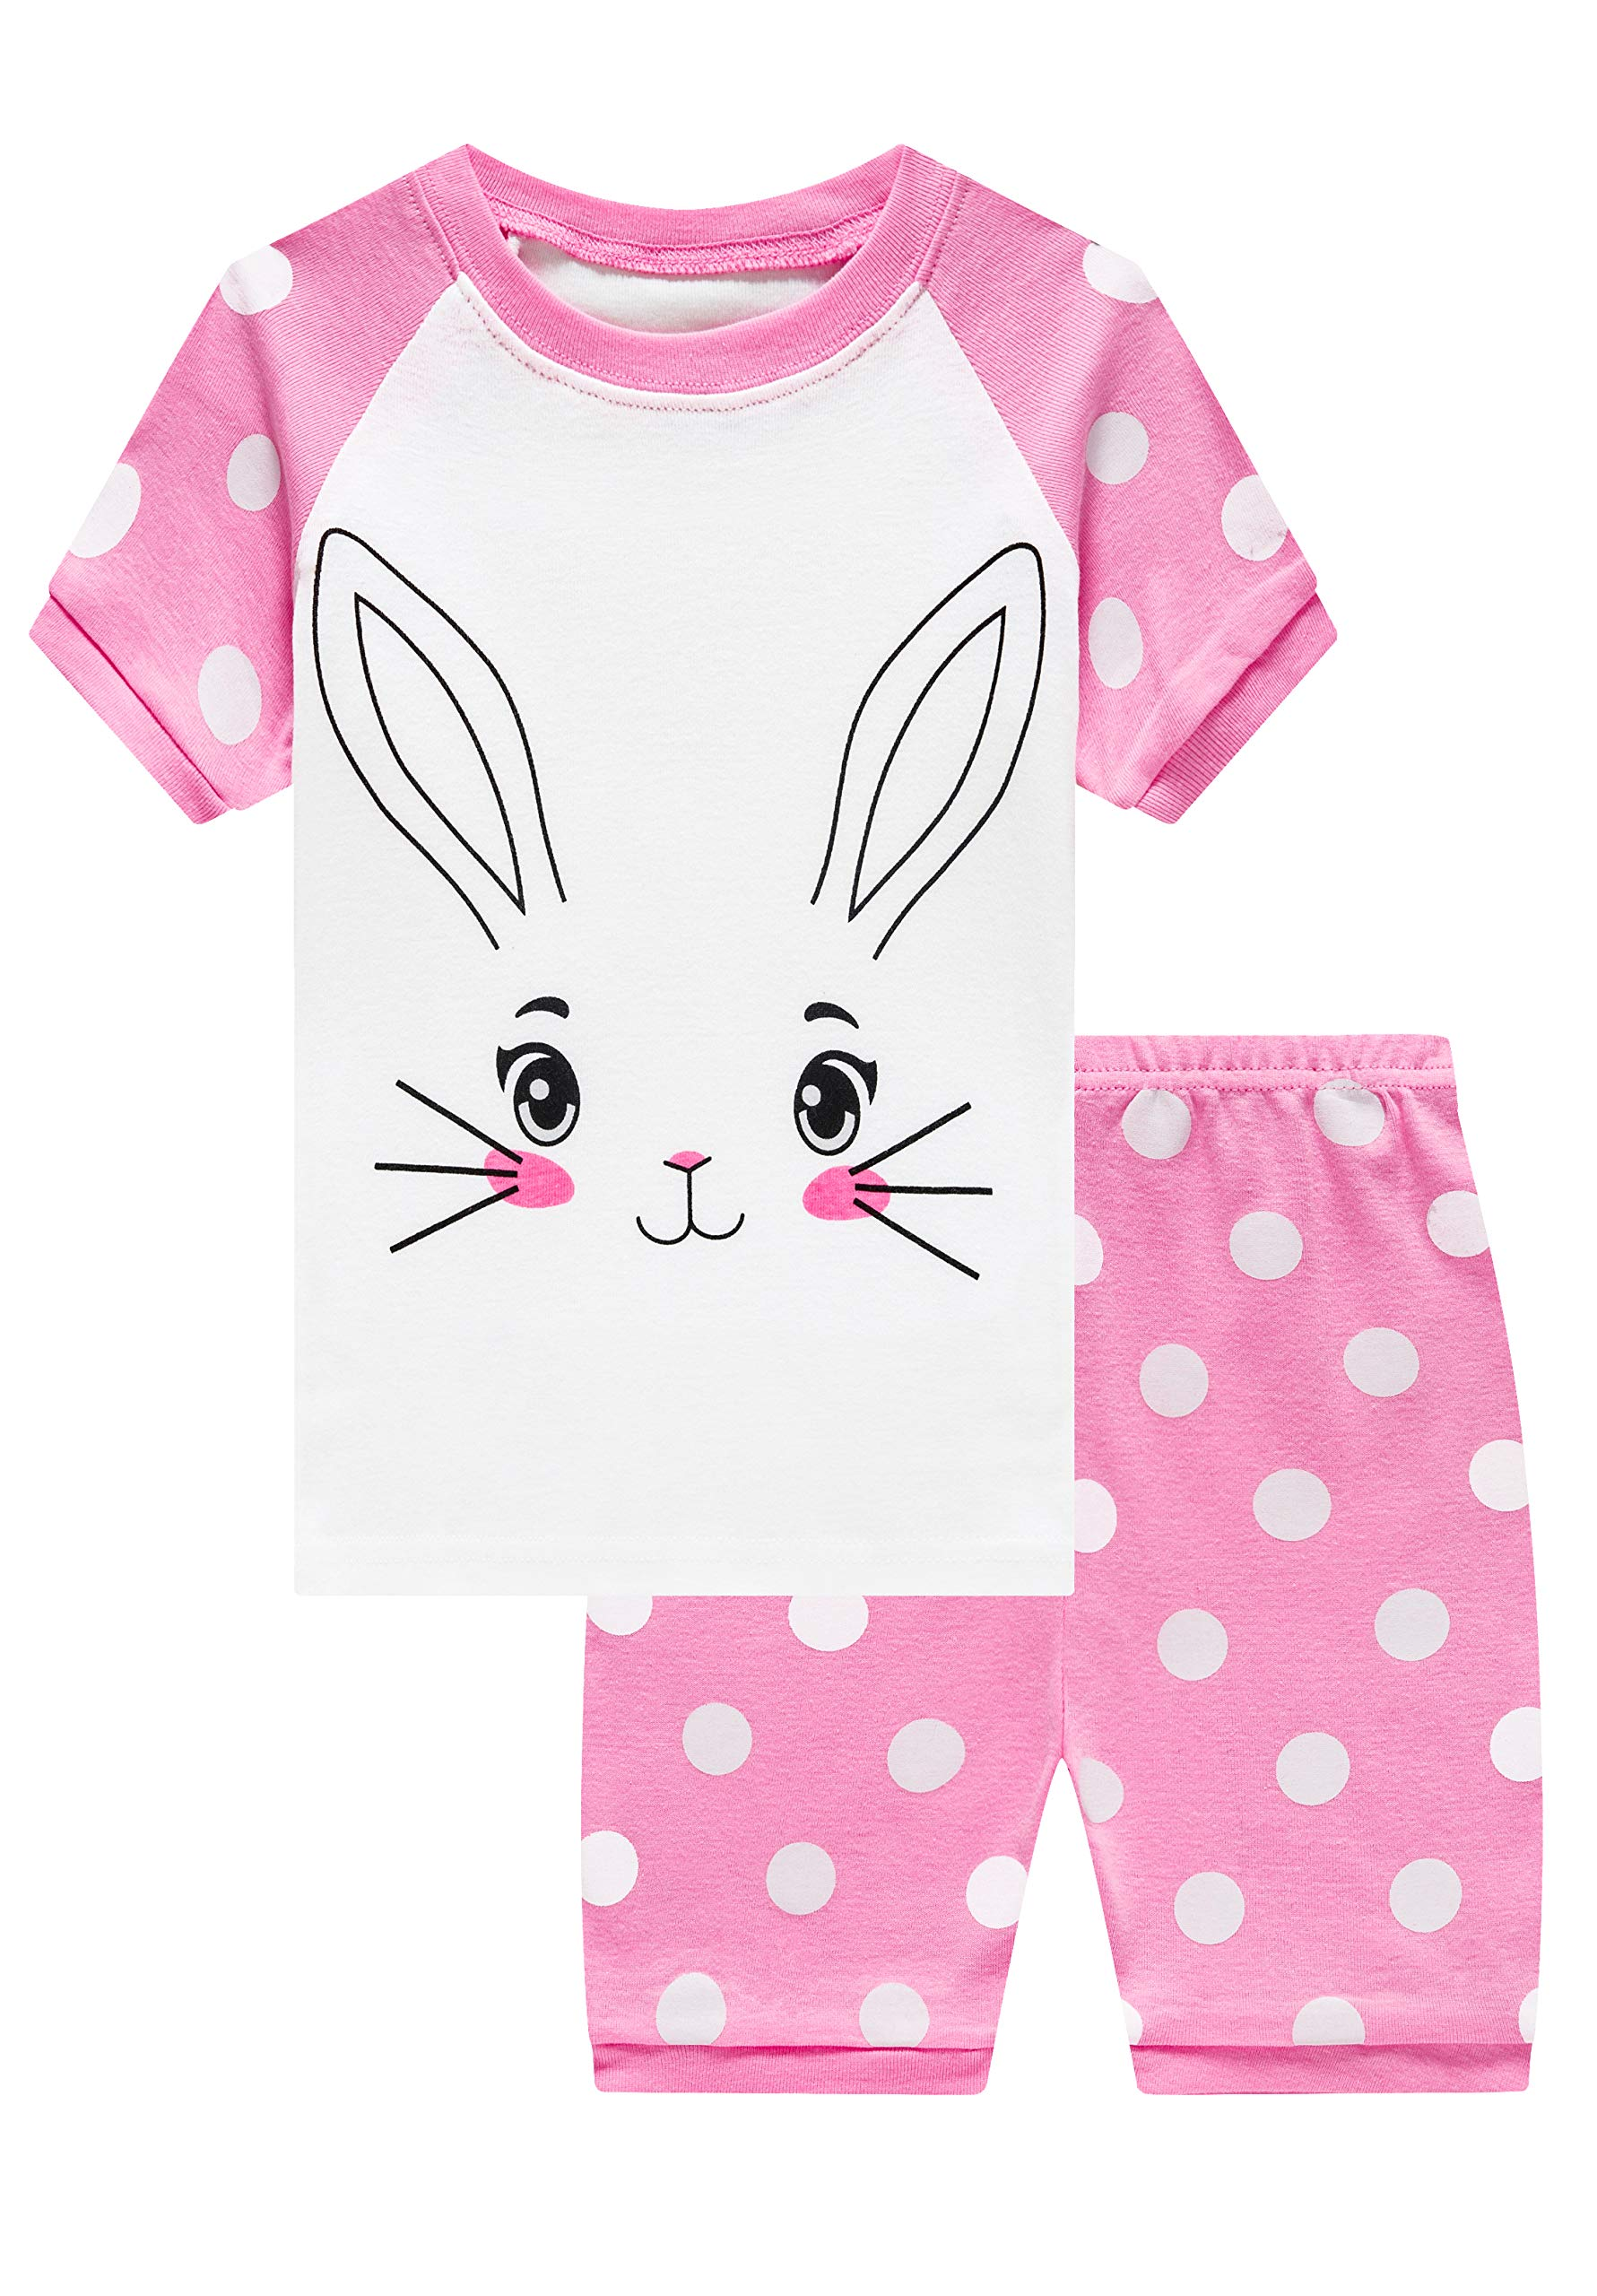 Pajamas Set for Girls Short Sleeve Sleepwears Kids Short Pjs Sets Baby Summer 100/% Cotton Pj